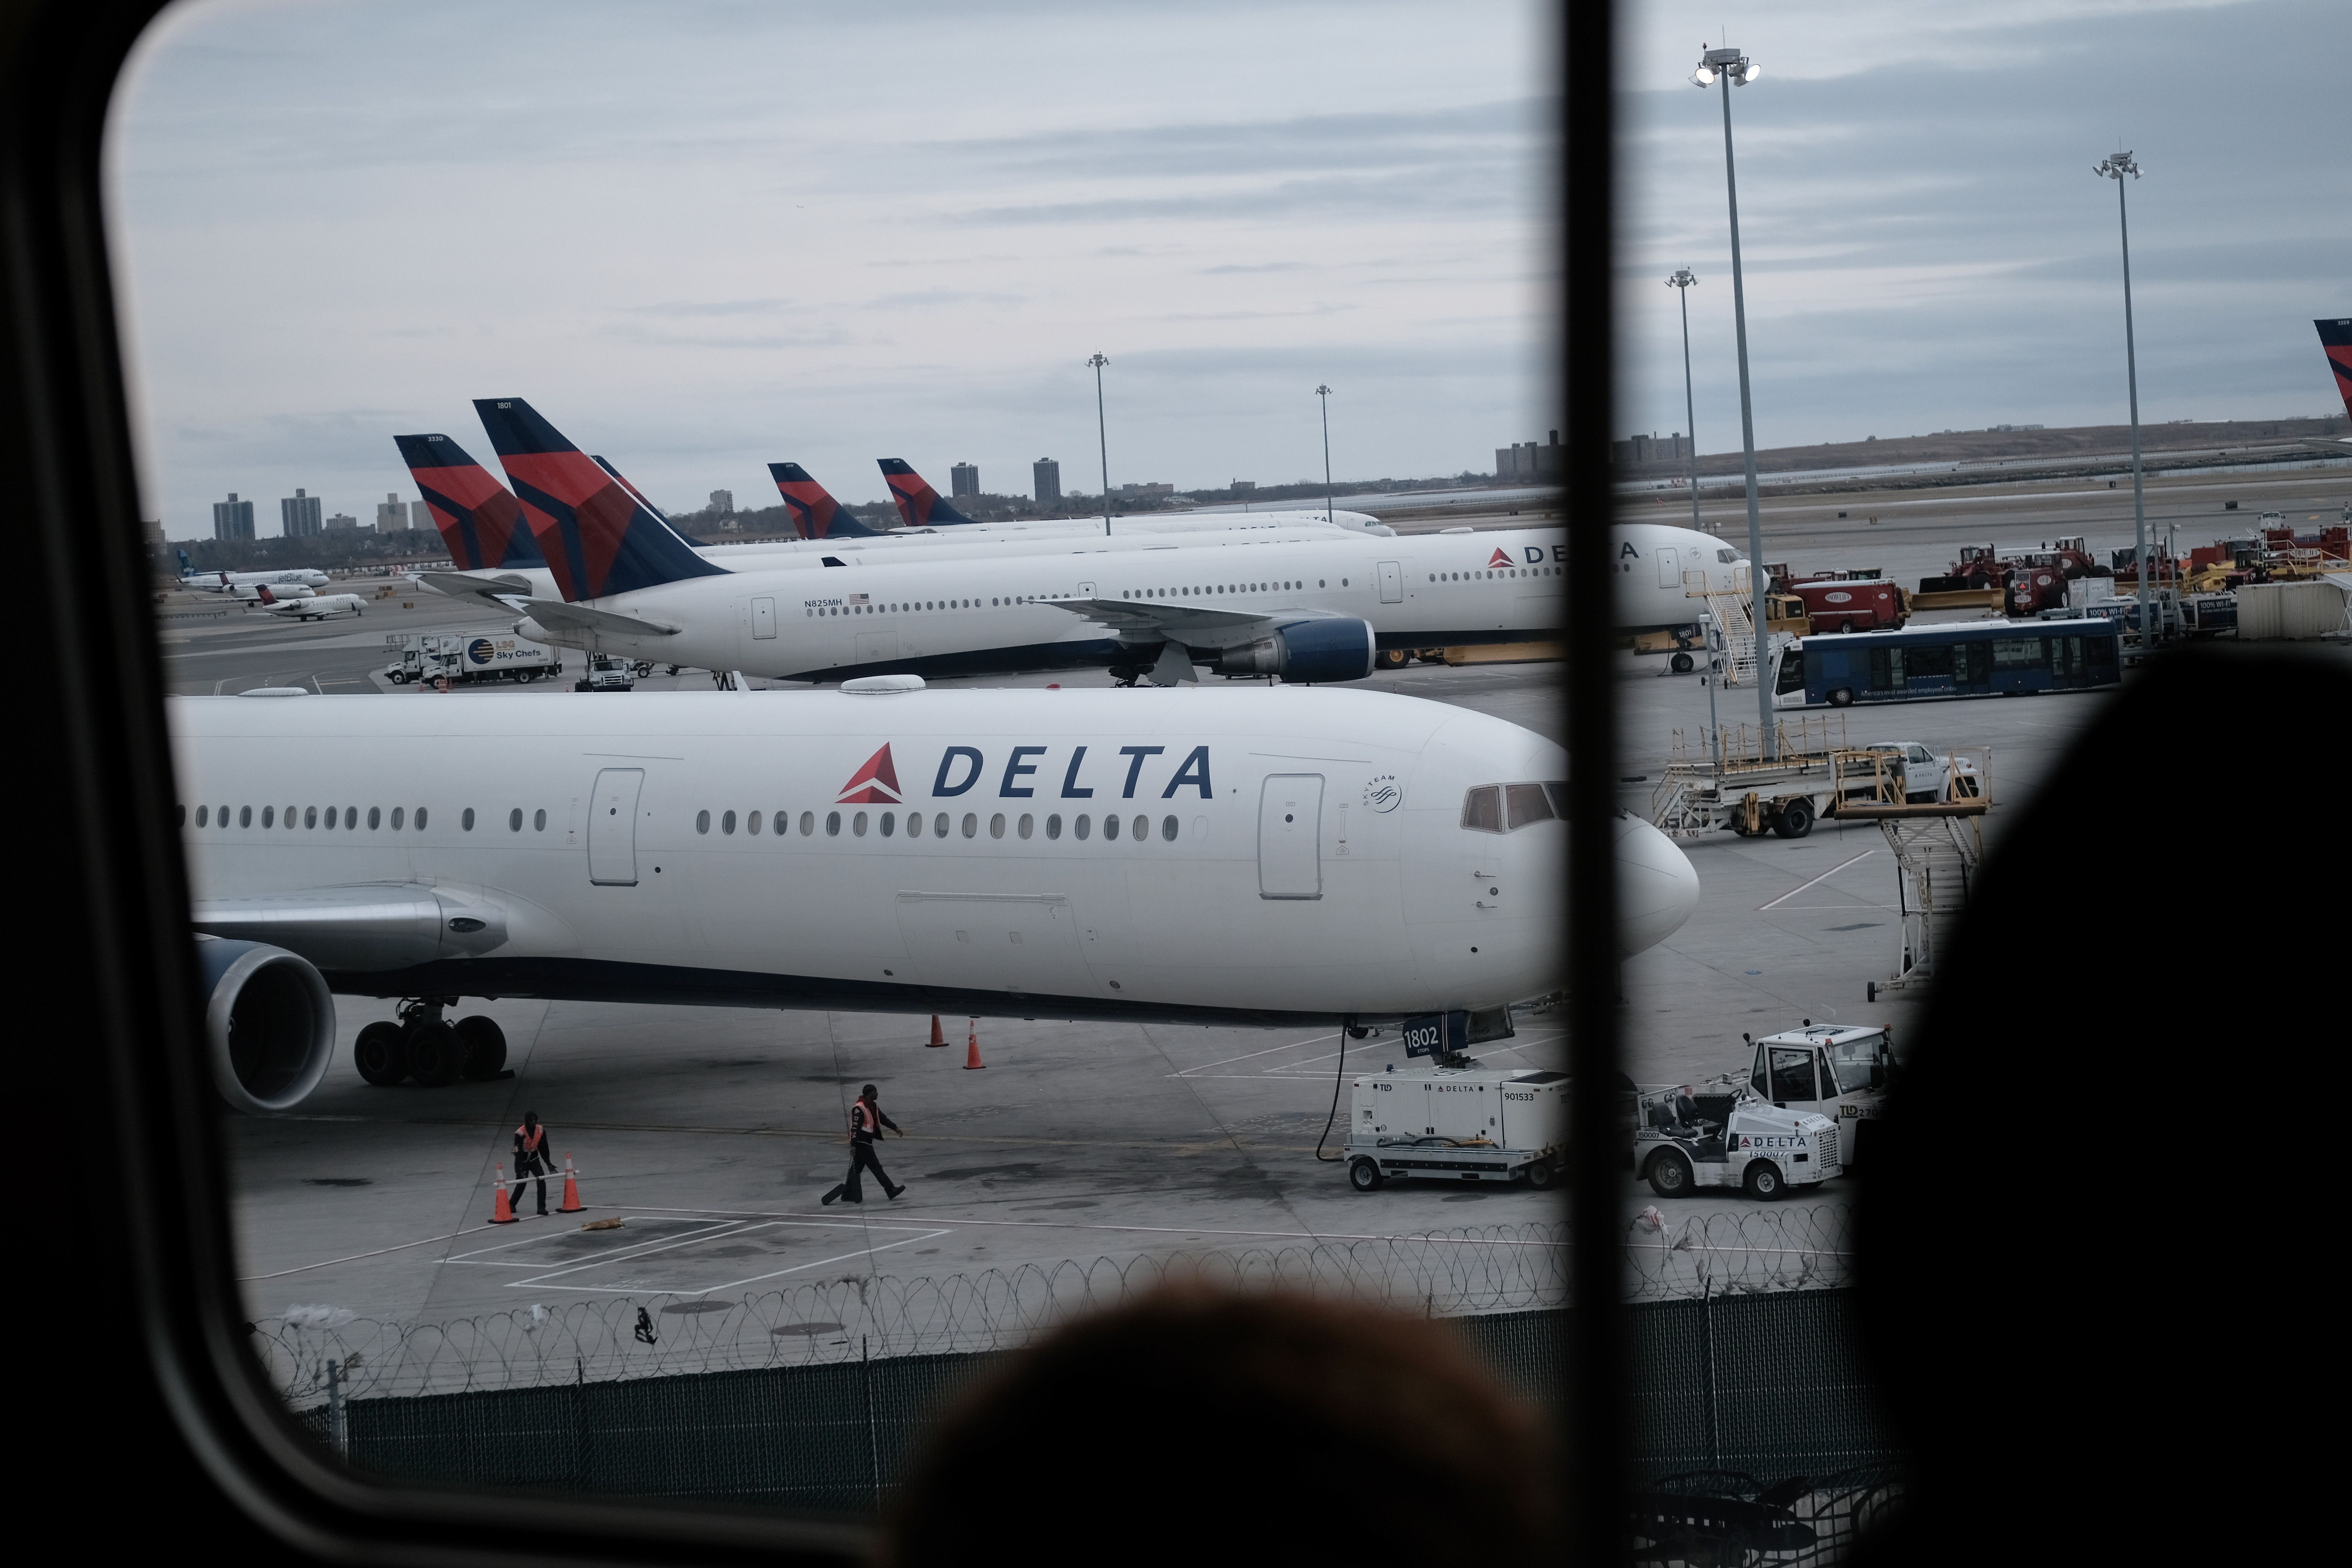 Delta Air Lines planes at John F. Kennedy Airport on January 31, 2020 in New York.